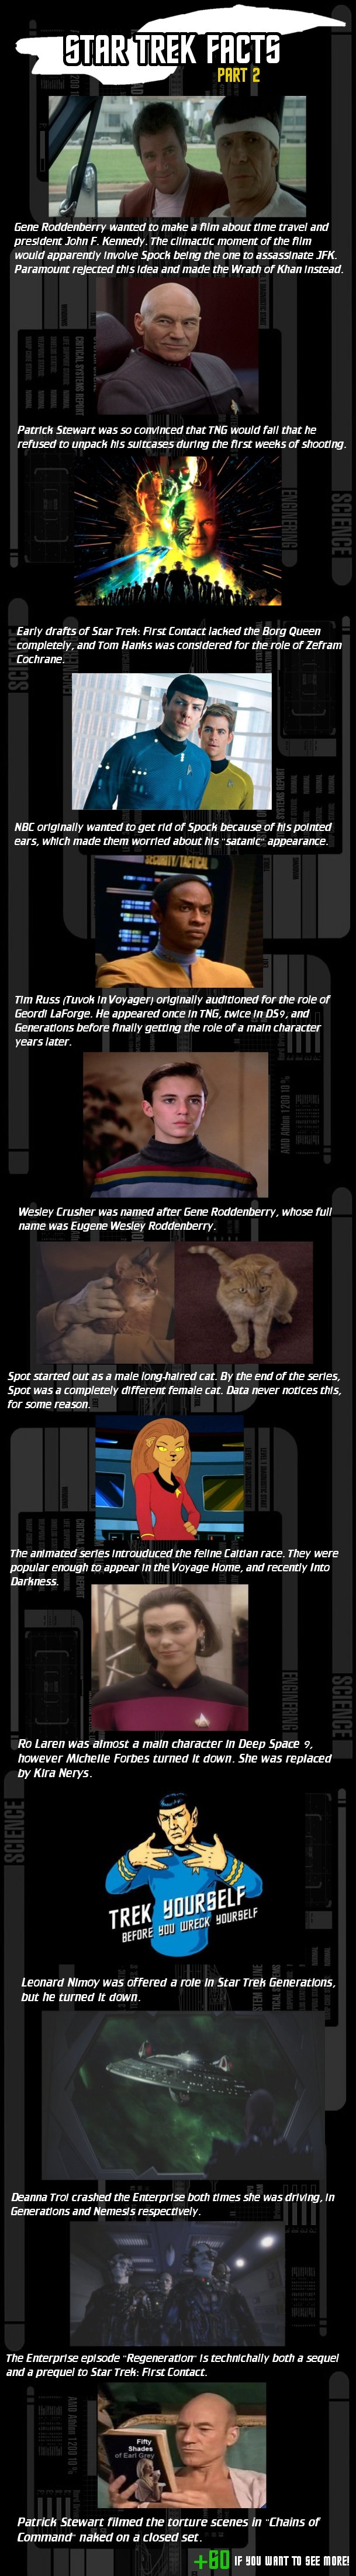 Star Trek Facts 2. Part 2, OC. I'll post the sources in the comments.. HER TREK FAILTE Gene Roddenberry wanted to make a mm about time travel and president John